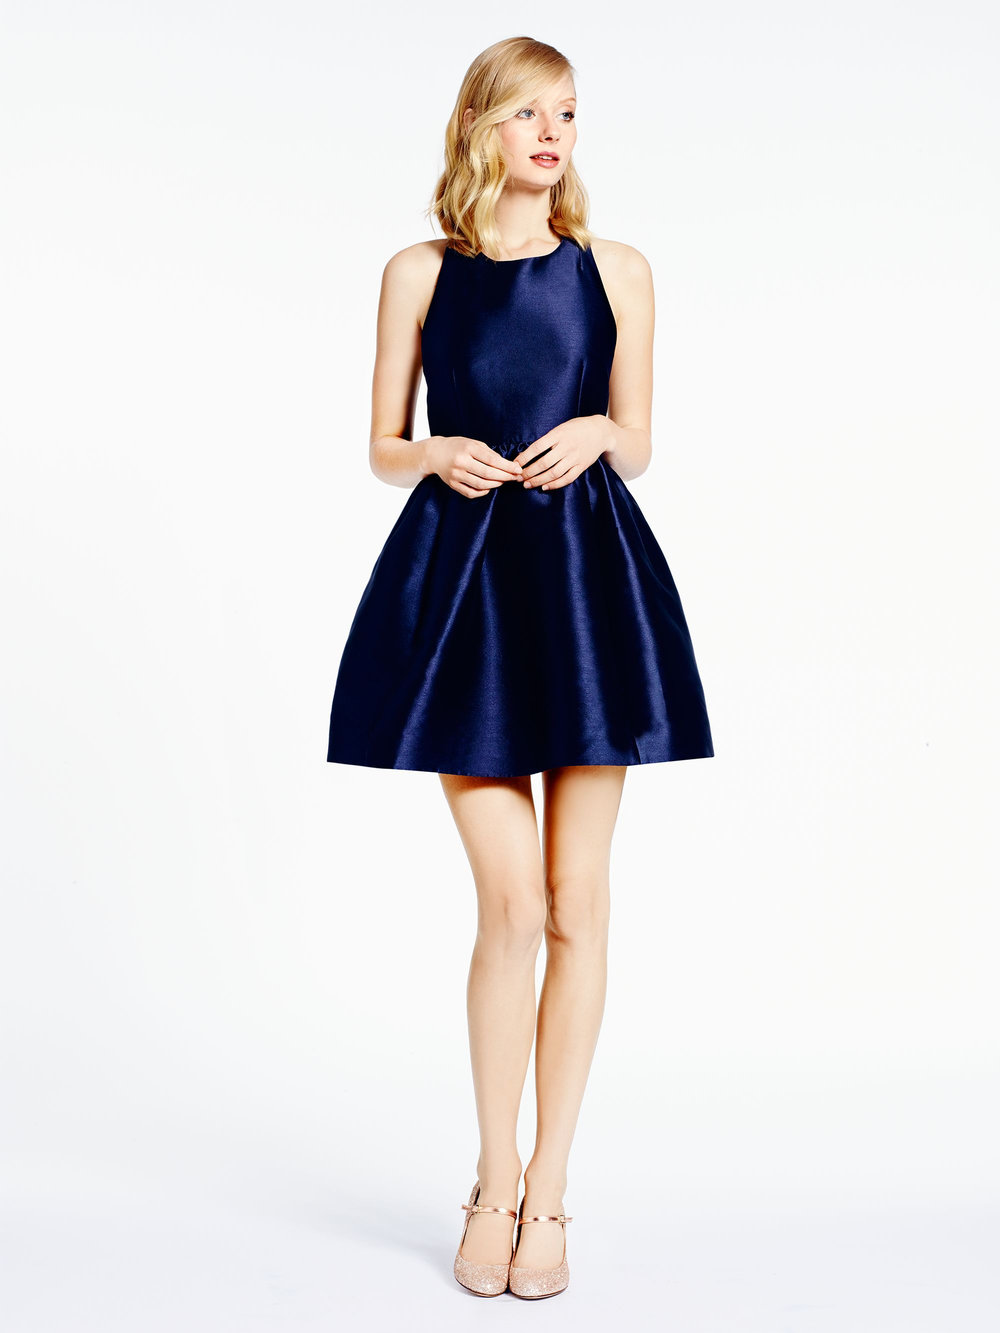 kate-spade-new-york-rich-navy-bow-back-fit-and-flare-dress-blue-product-1-580314647-normal.jpeg